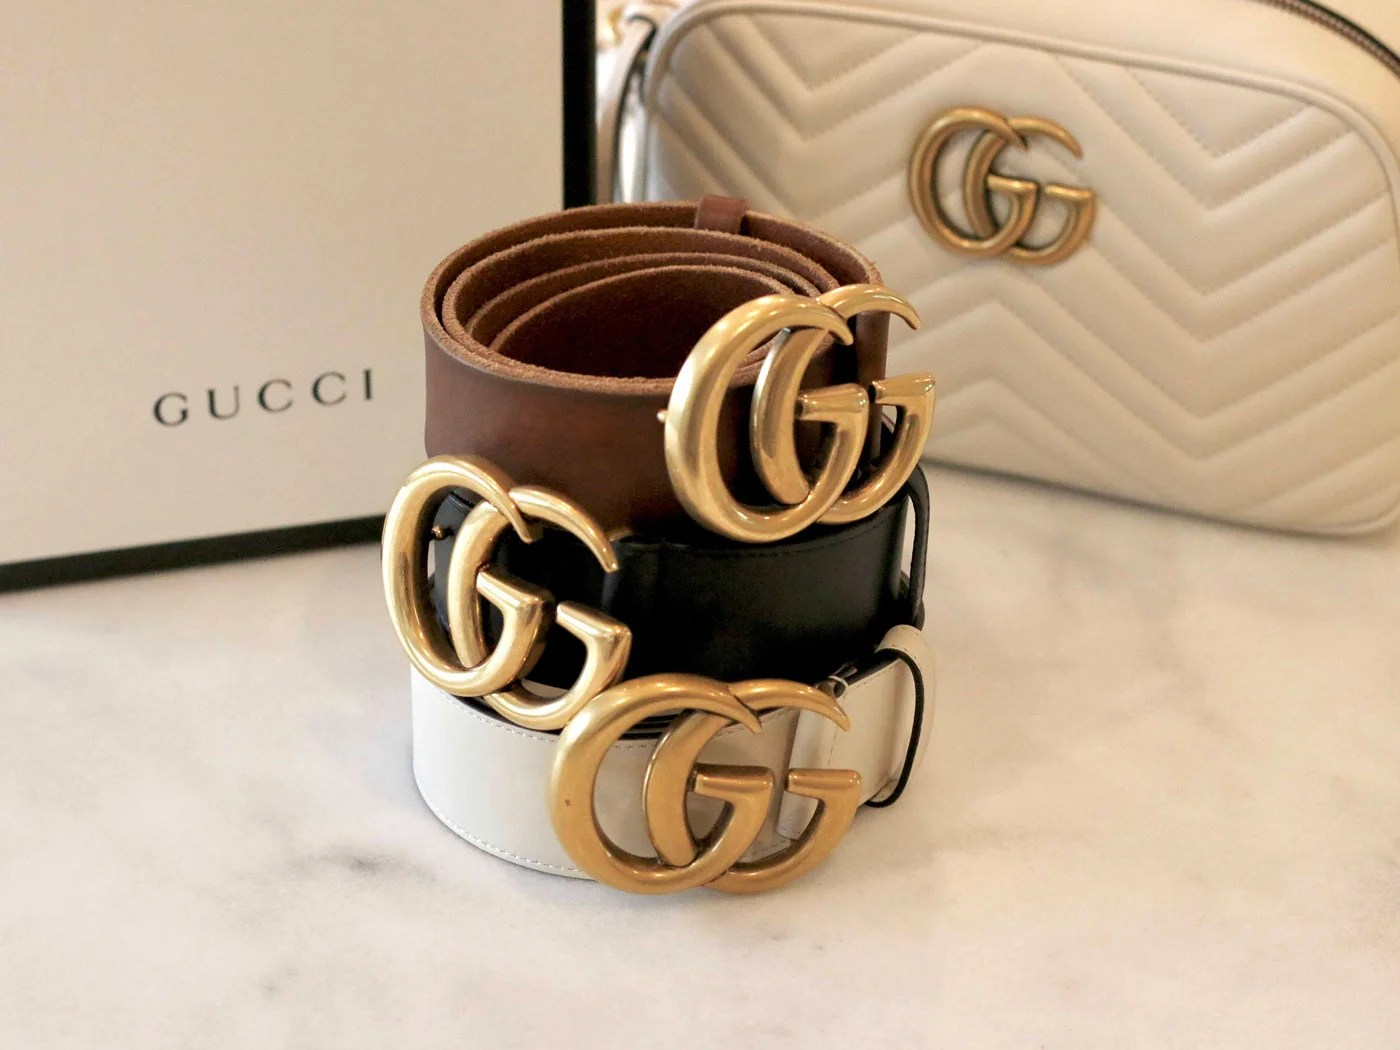 76d880caa74 Gucci Marmont Belt - Sizing and Adding More Holes